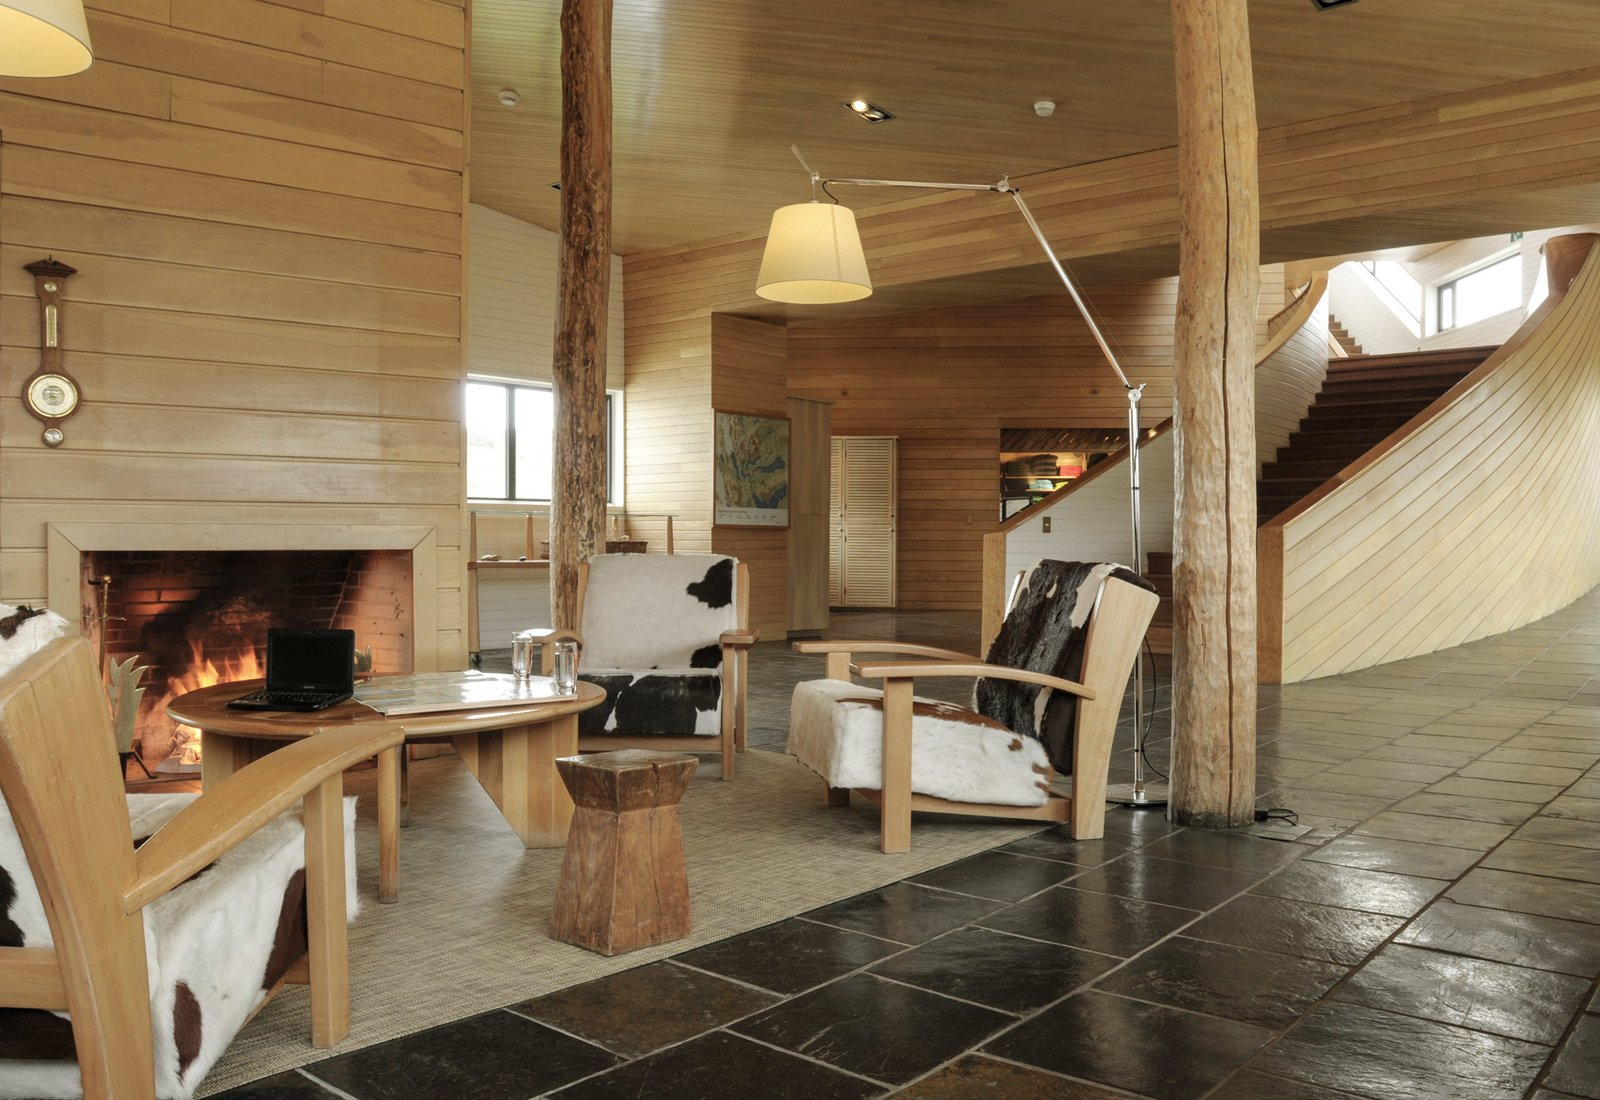 Photo 8 of 9 in Explora Patagonia Hotel – Your New Bucket List Addition